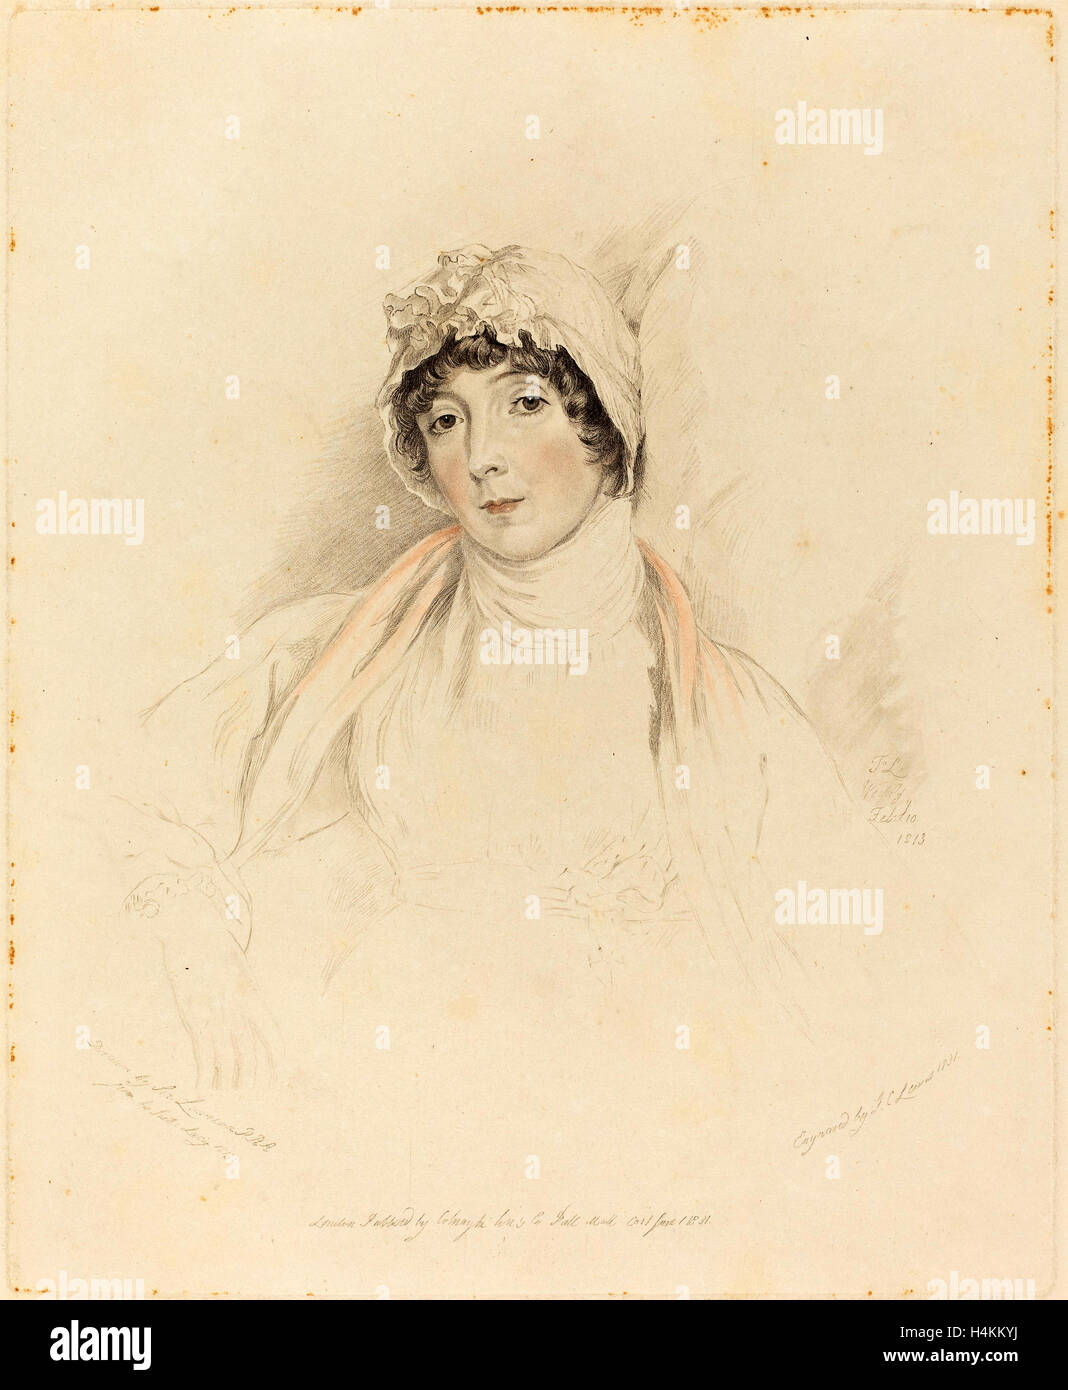 Frederick Christian Lewis I after Sir Thomas Lawrence (British, 1779 - 1856), Lucy Lawrence, 1831, hand-colored - Stock Image